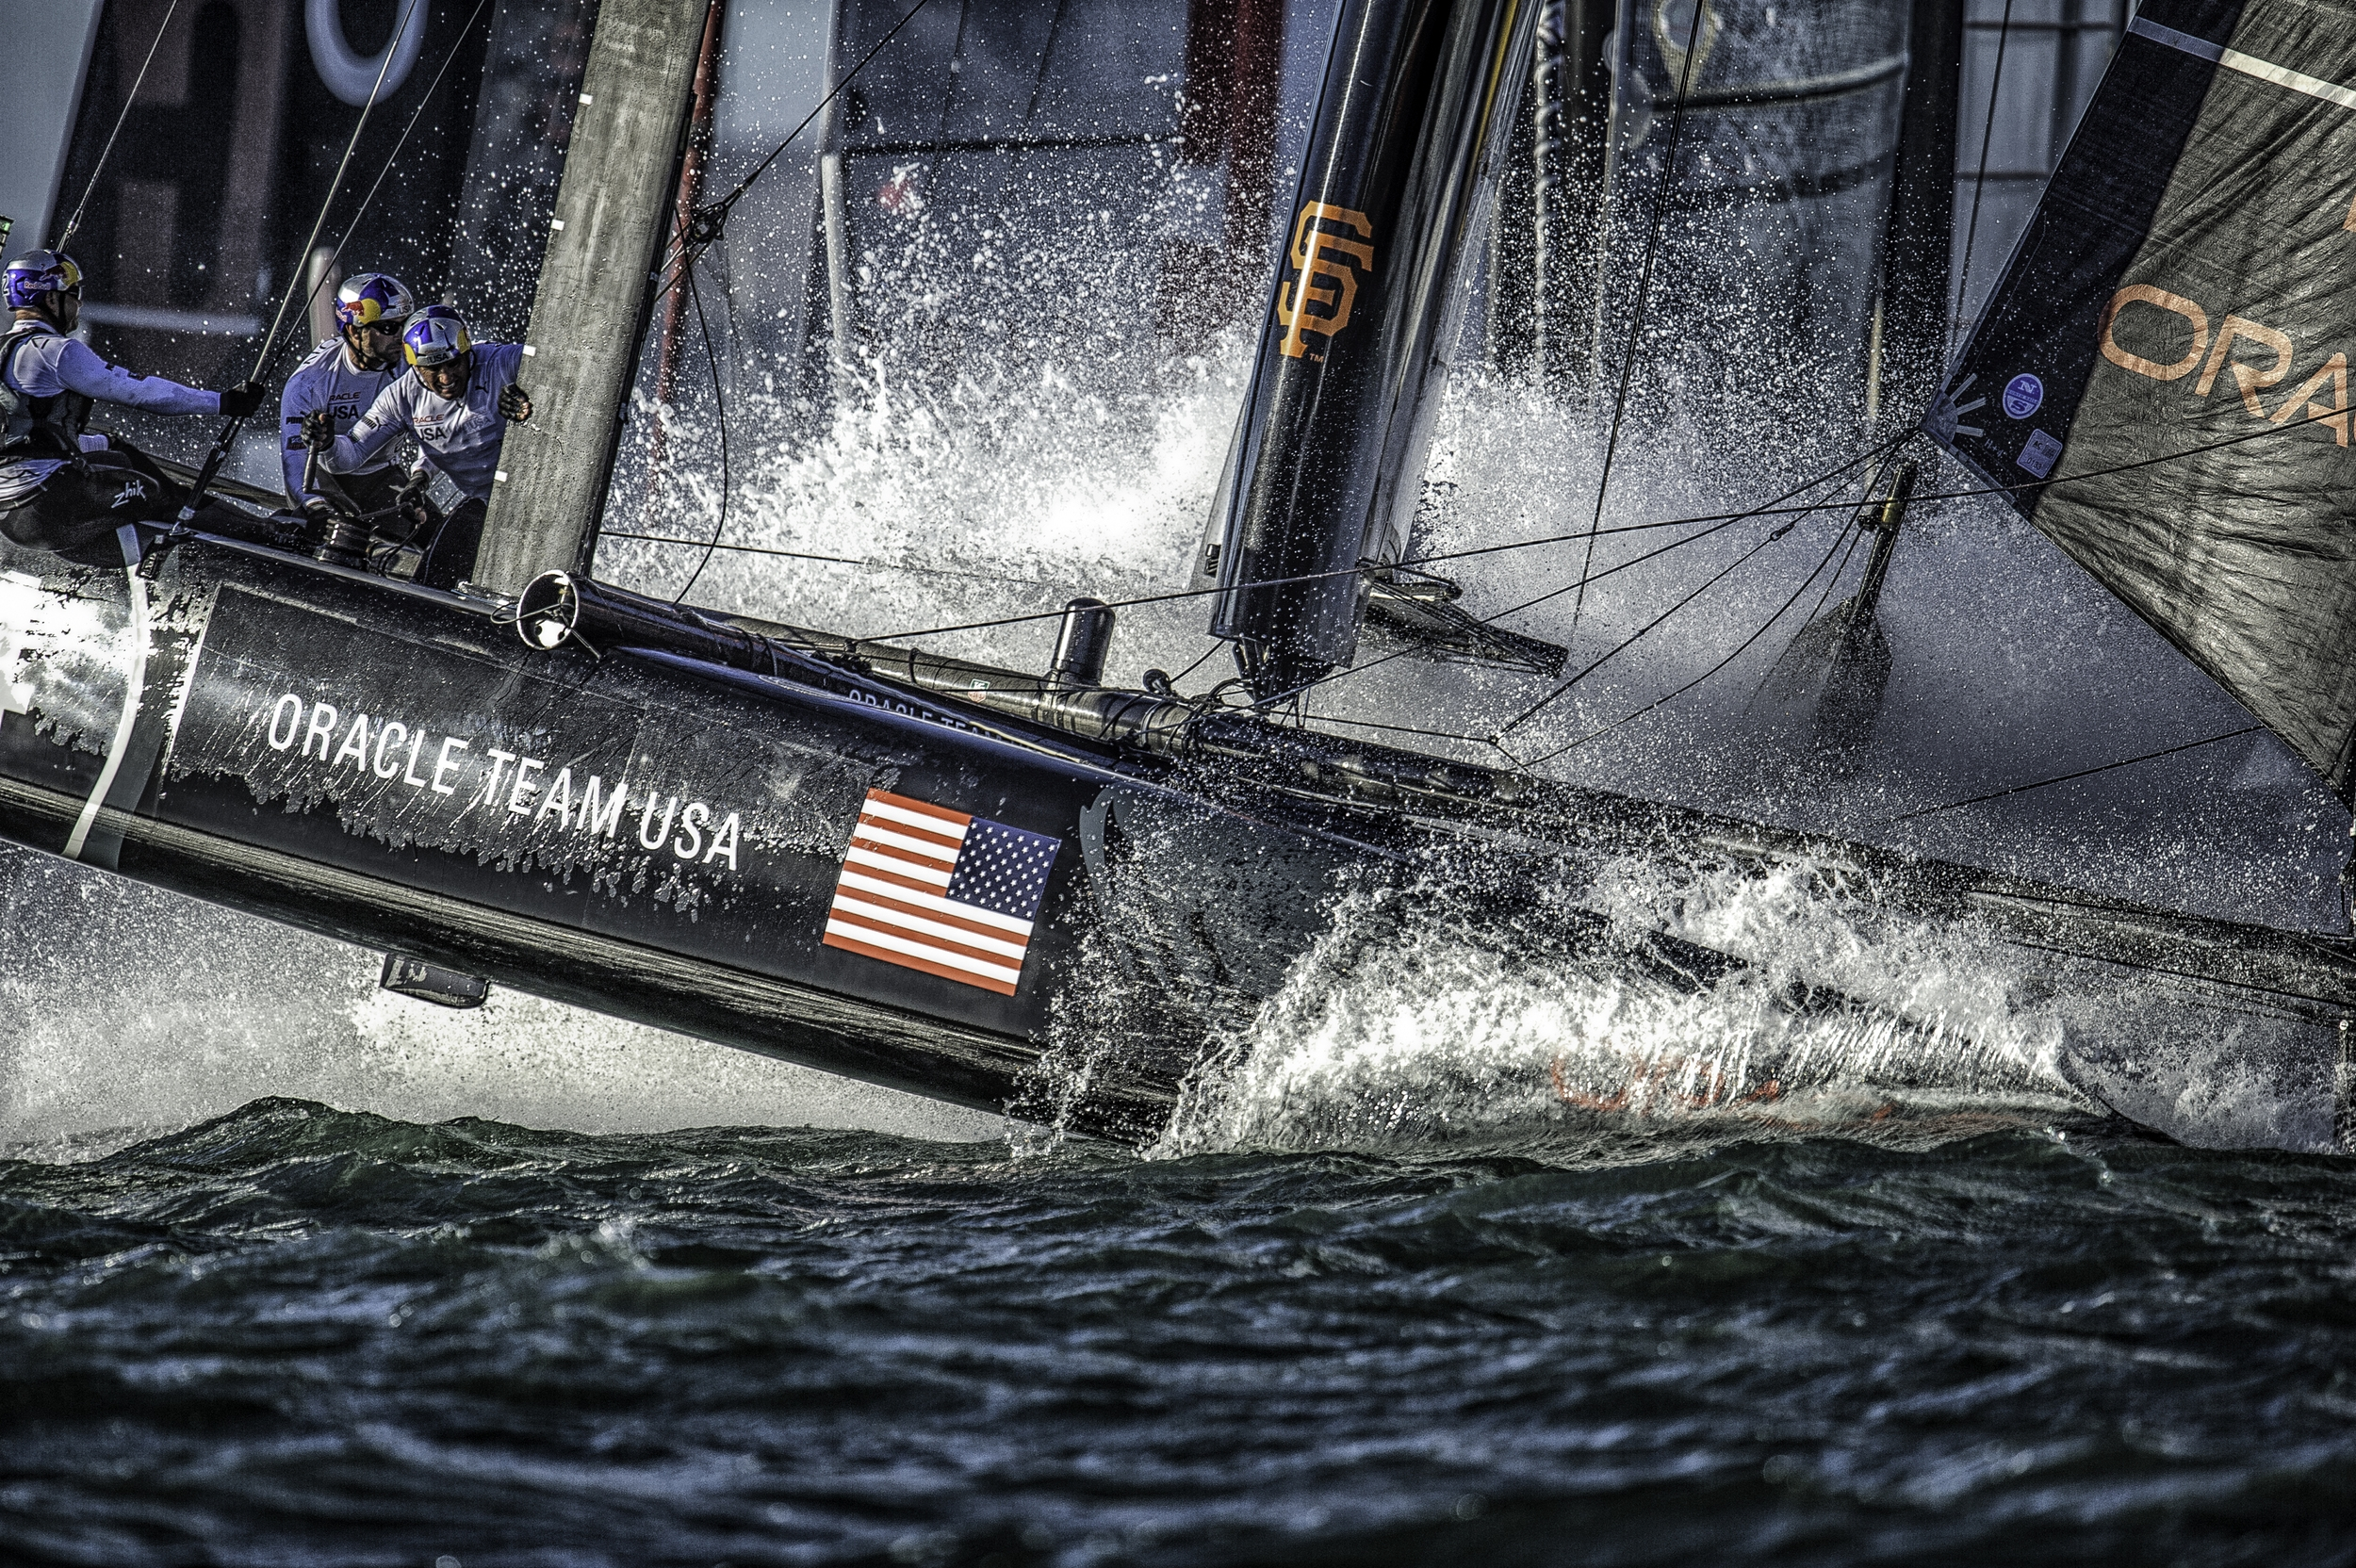 CLIENT: AMERICA'S CUP